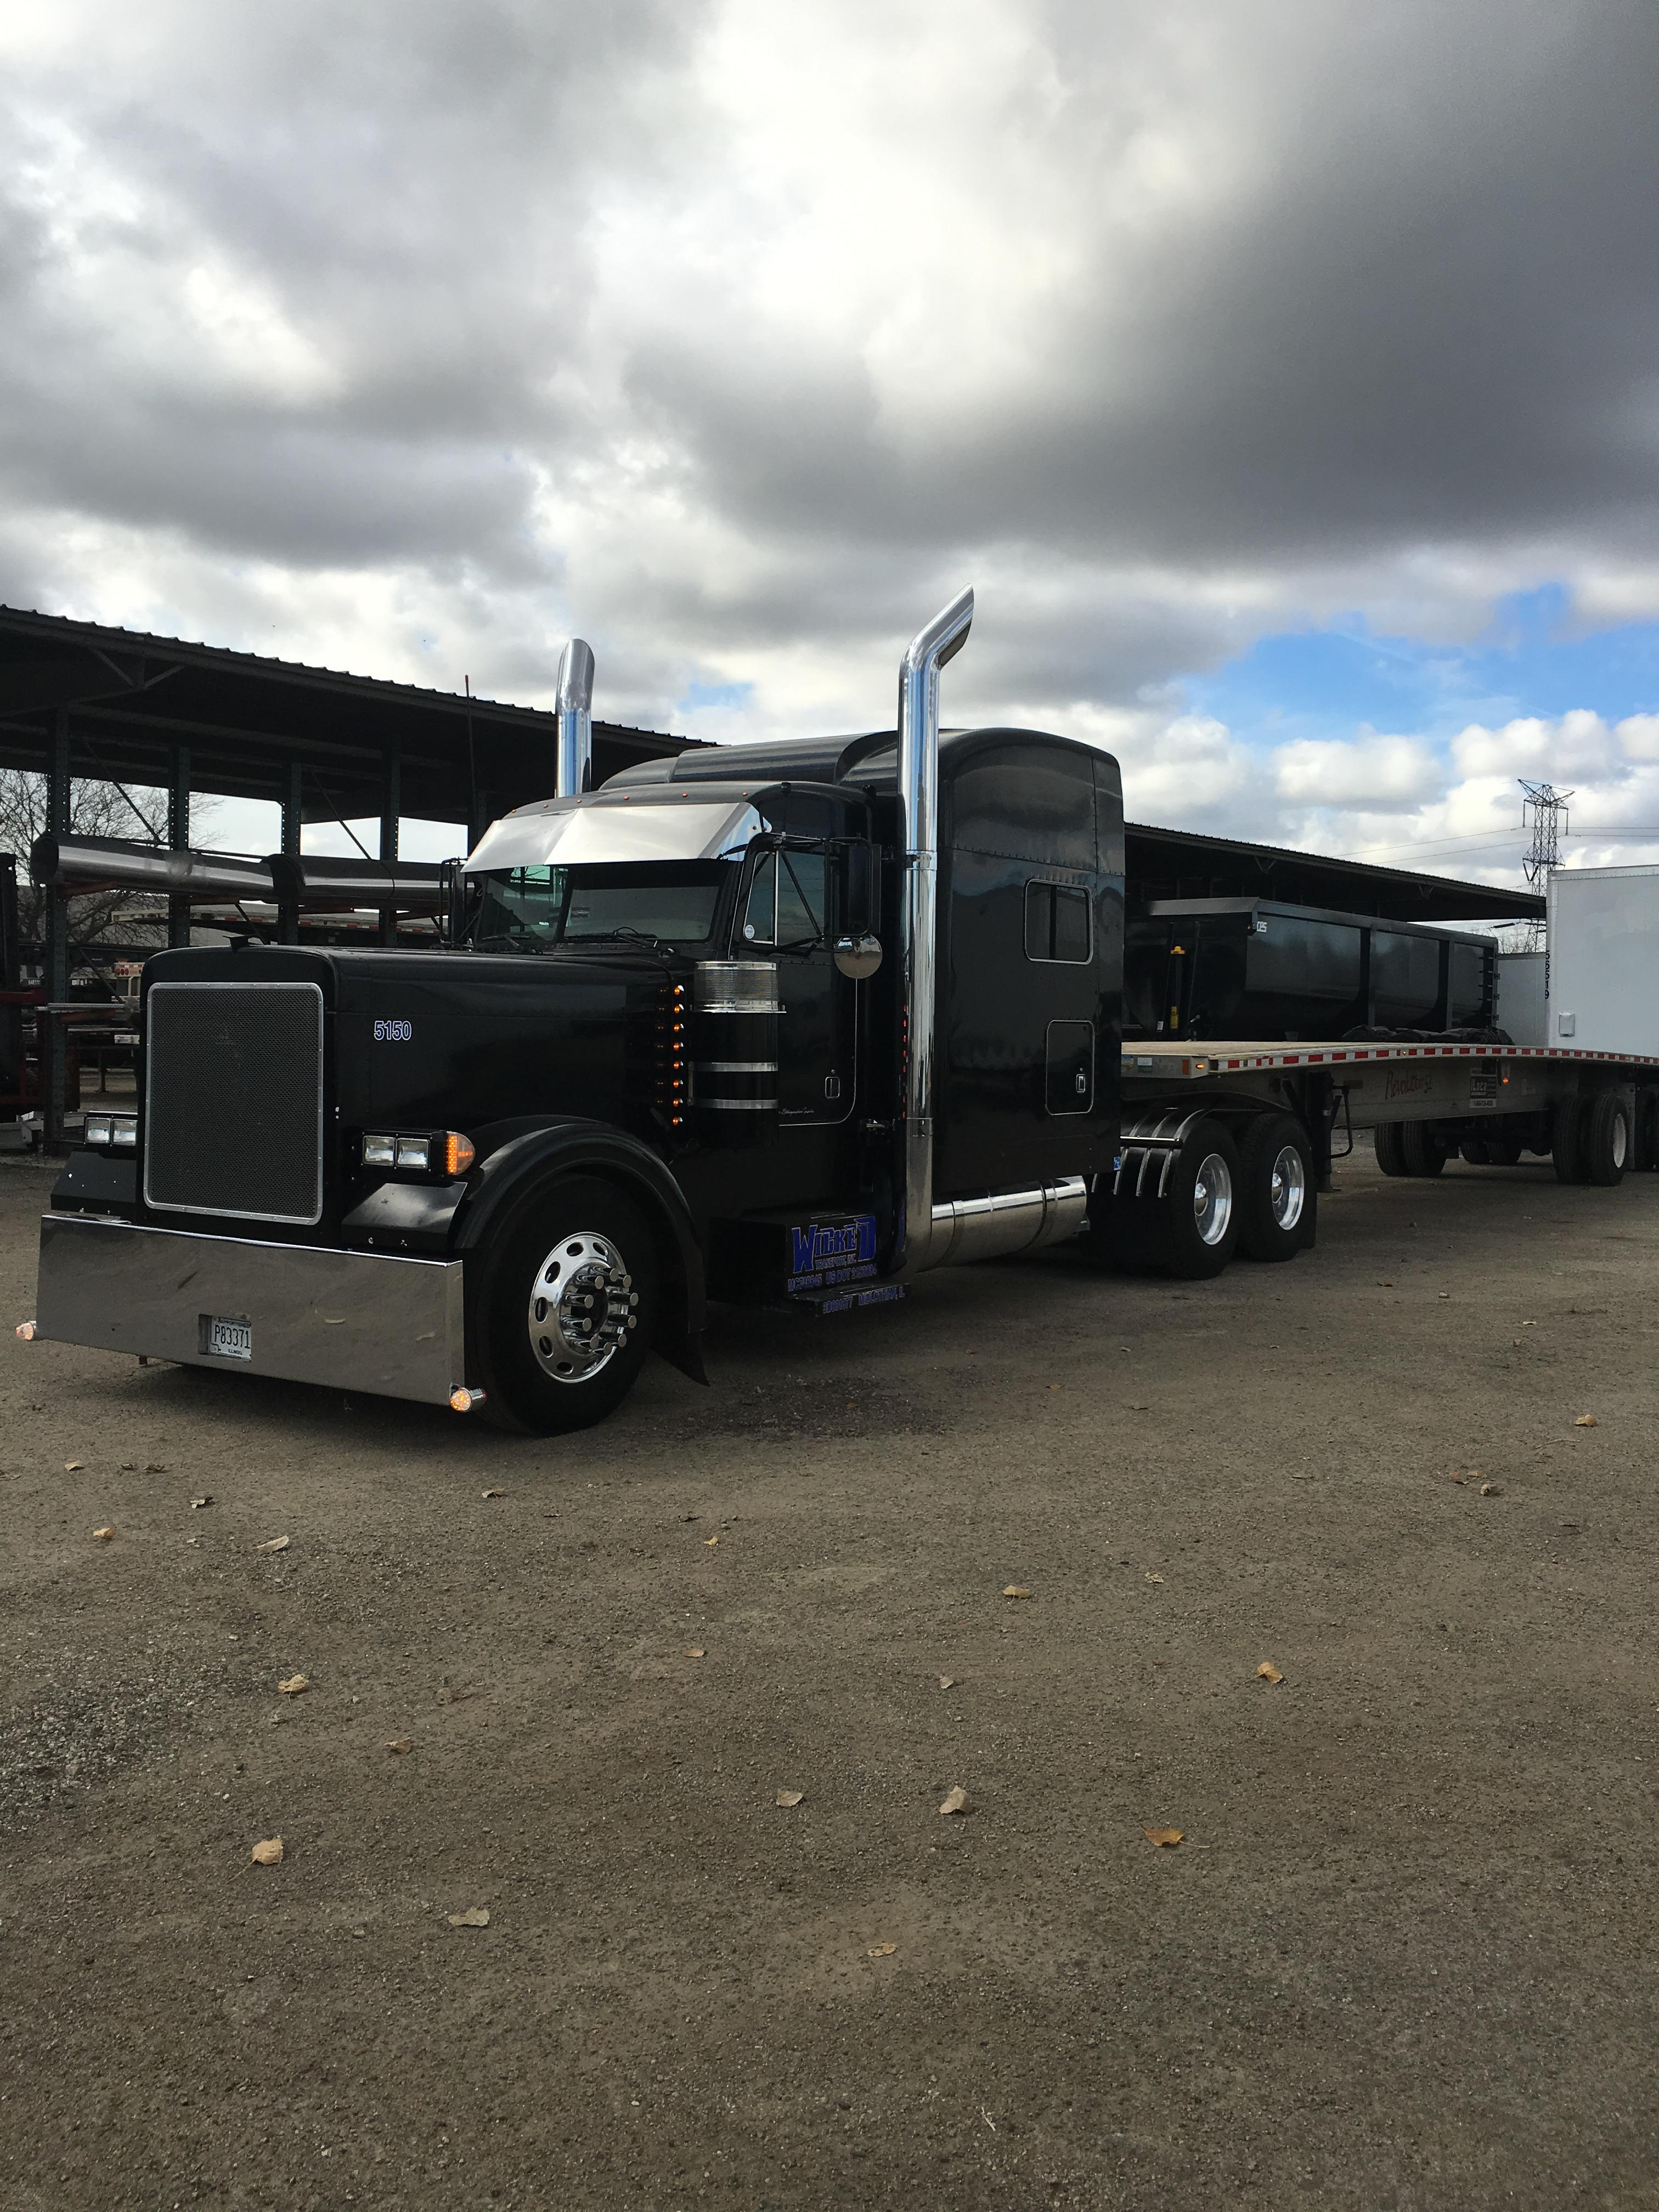 Keith R's big rig, second picture.